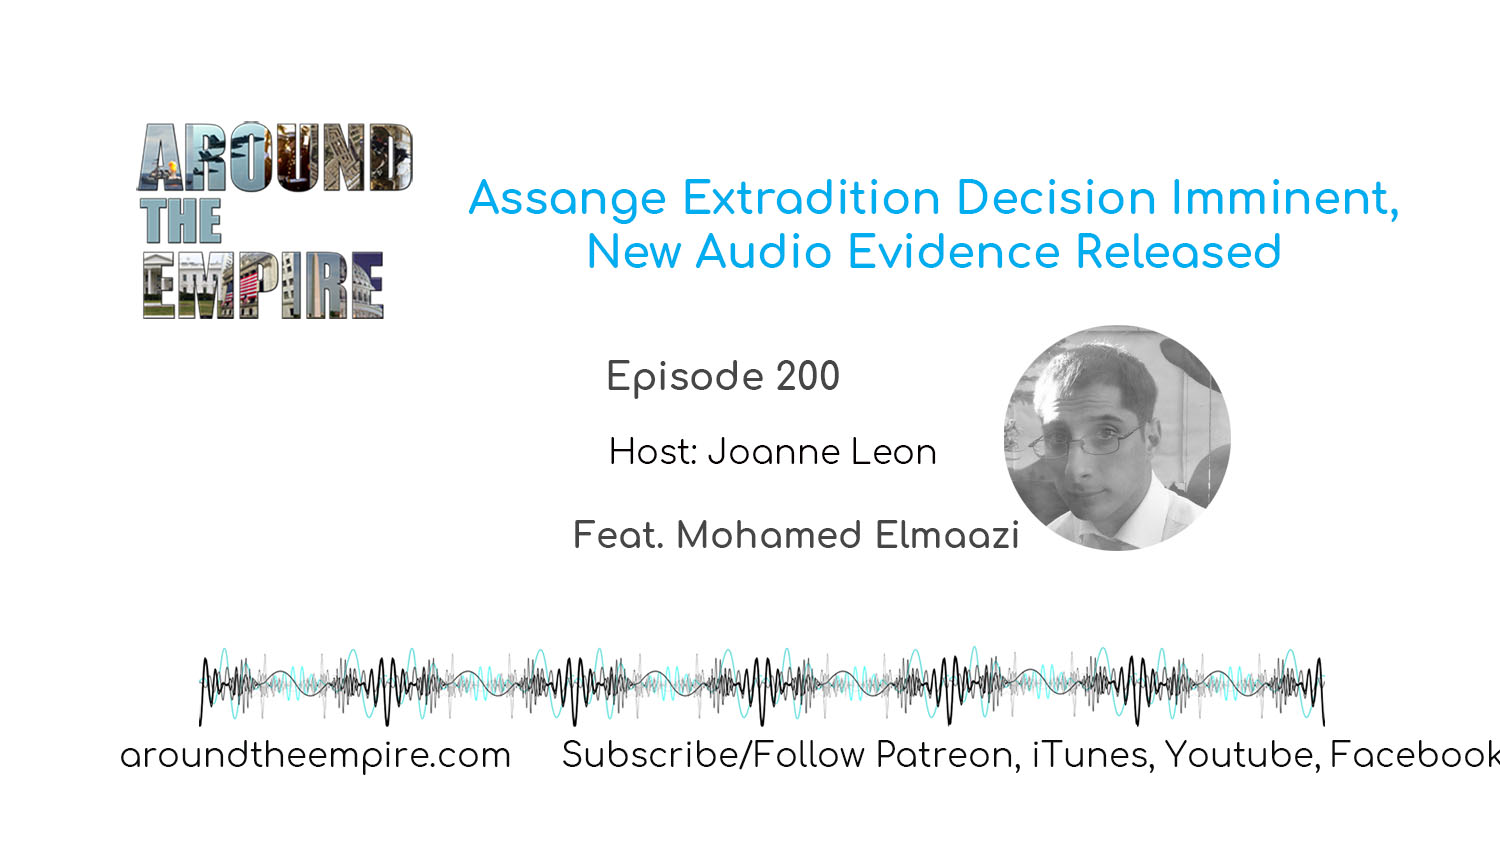 Ep 200 Assange Extradition Decision Imminent New Audio Evidence Released feat Mohamed Elmaazi